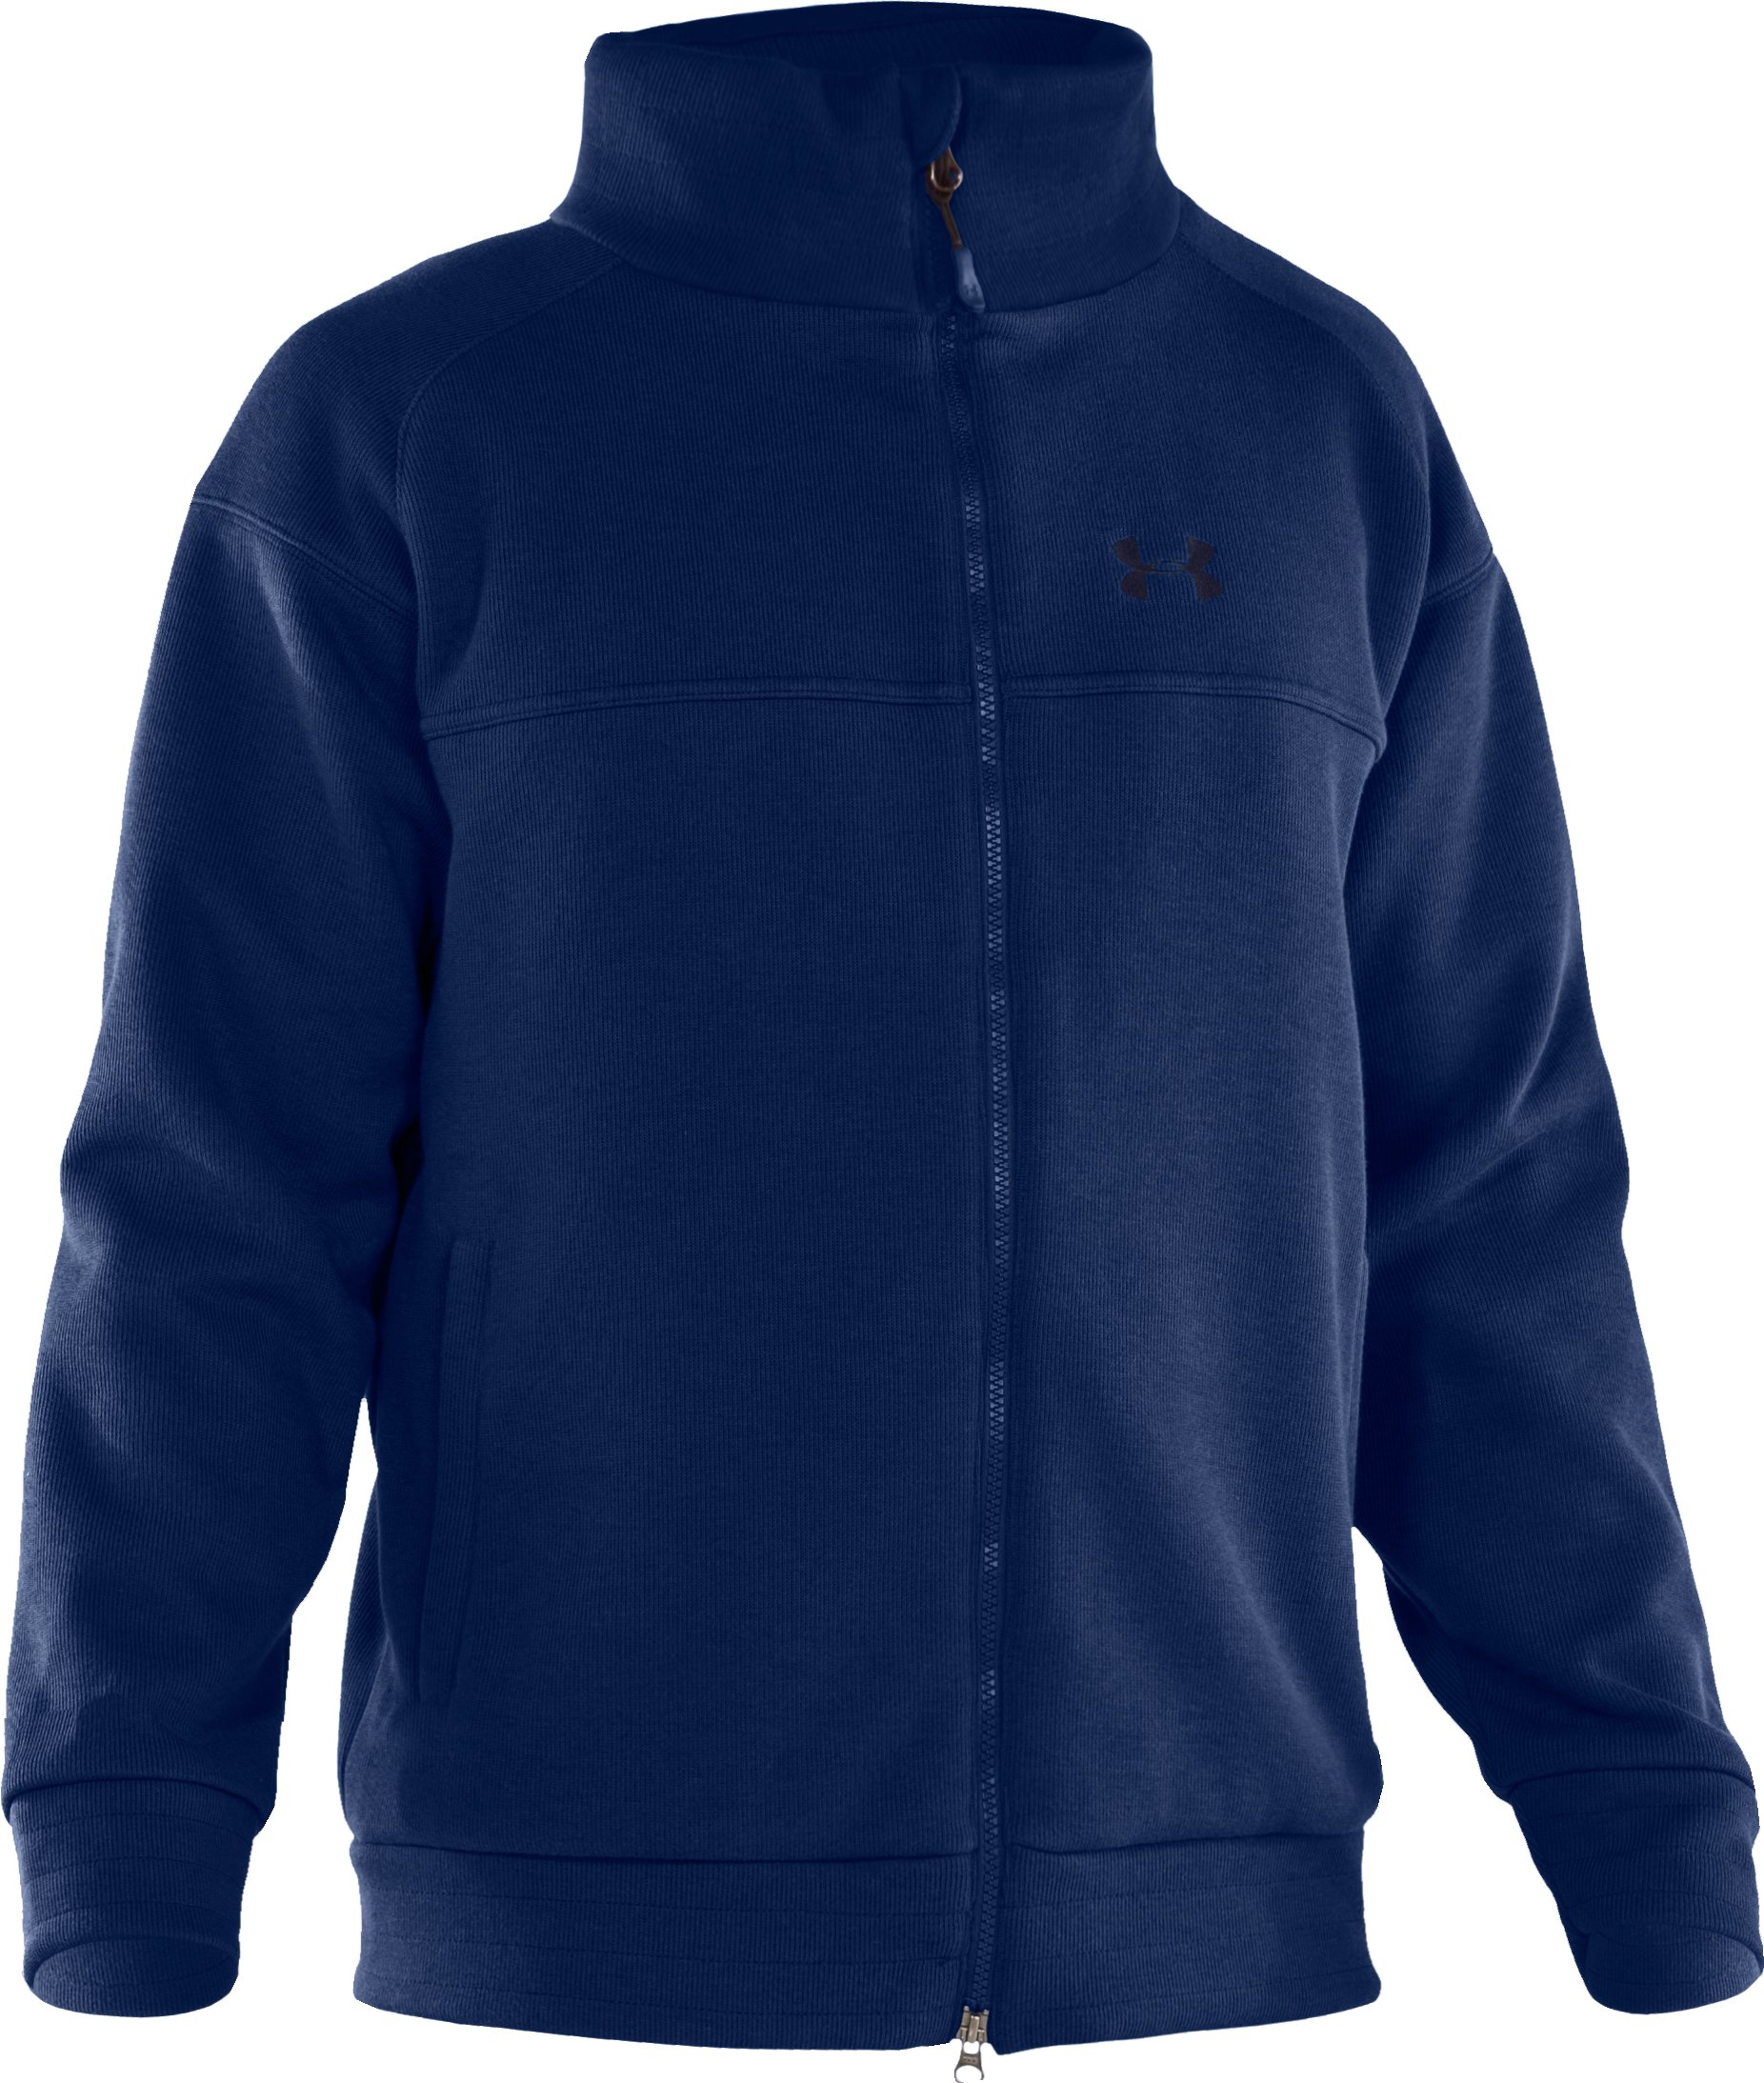 Men's UA Swagger Storm Wind Jacket, Evening